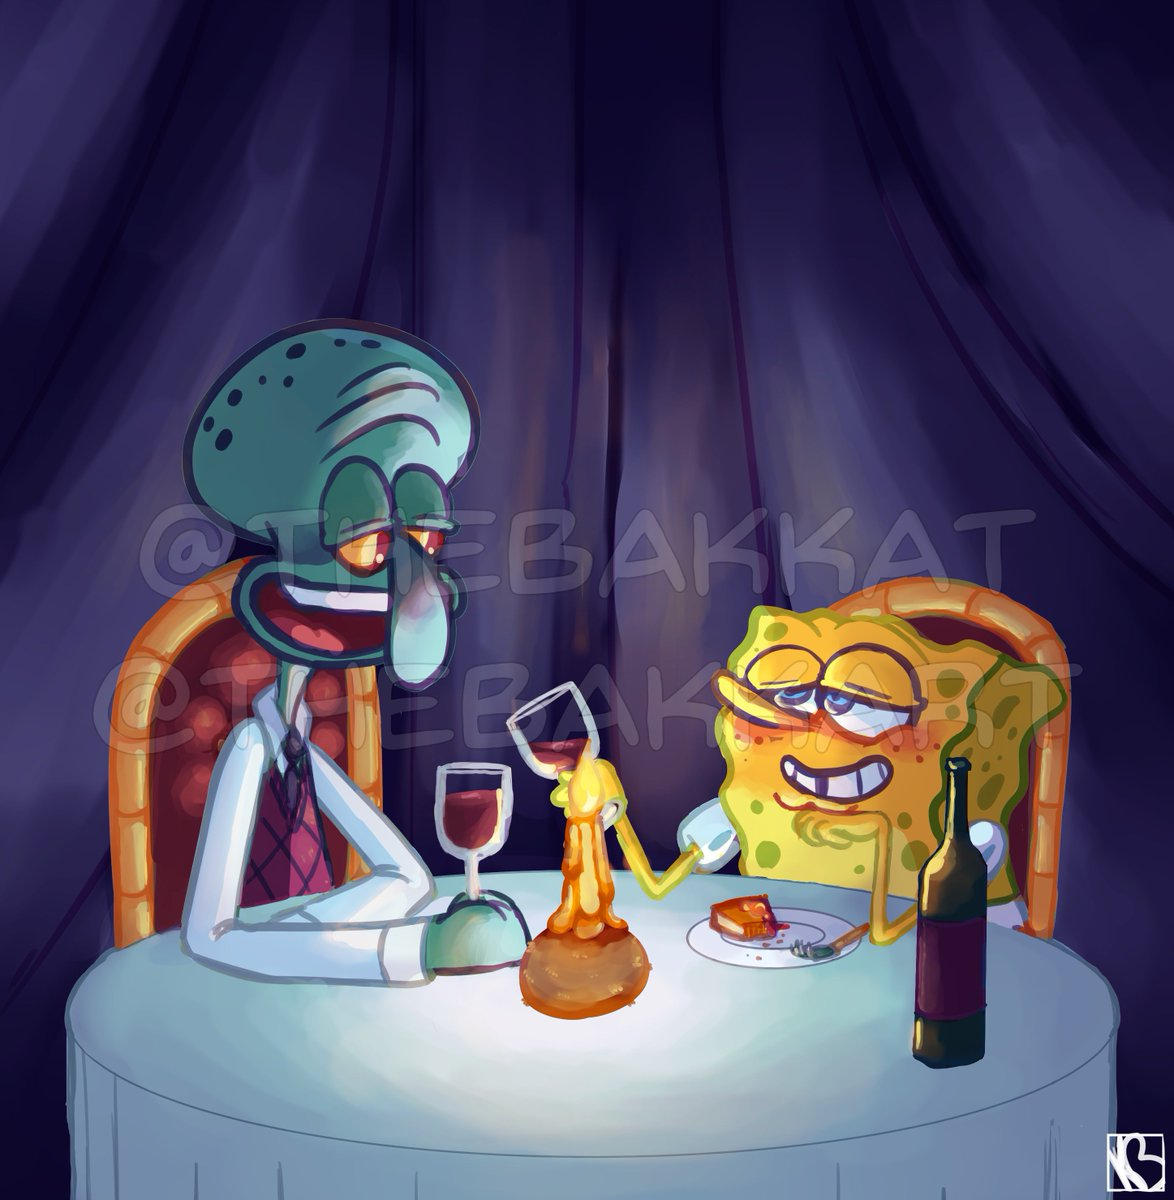 Spongebob Dating Krabby Patty